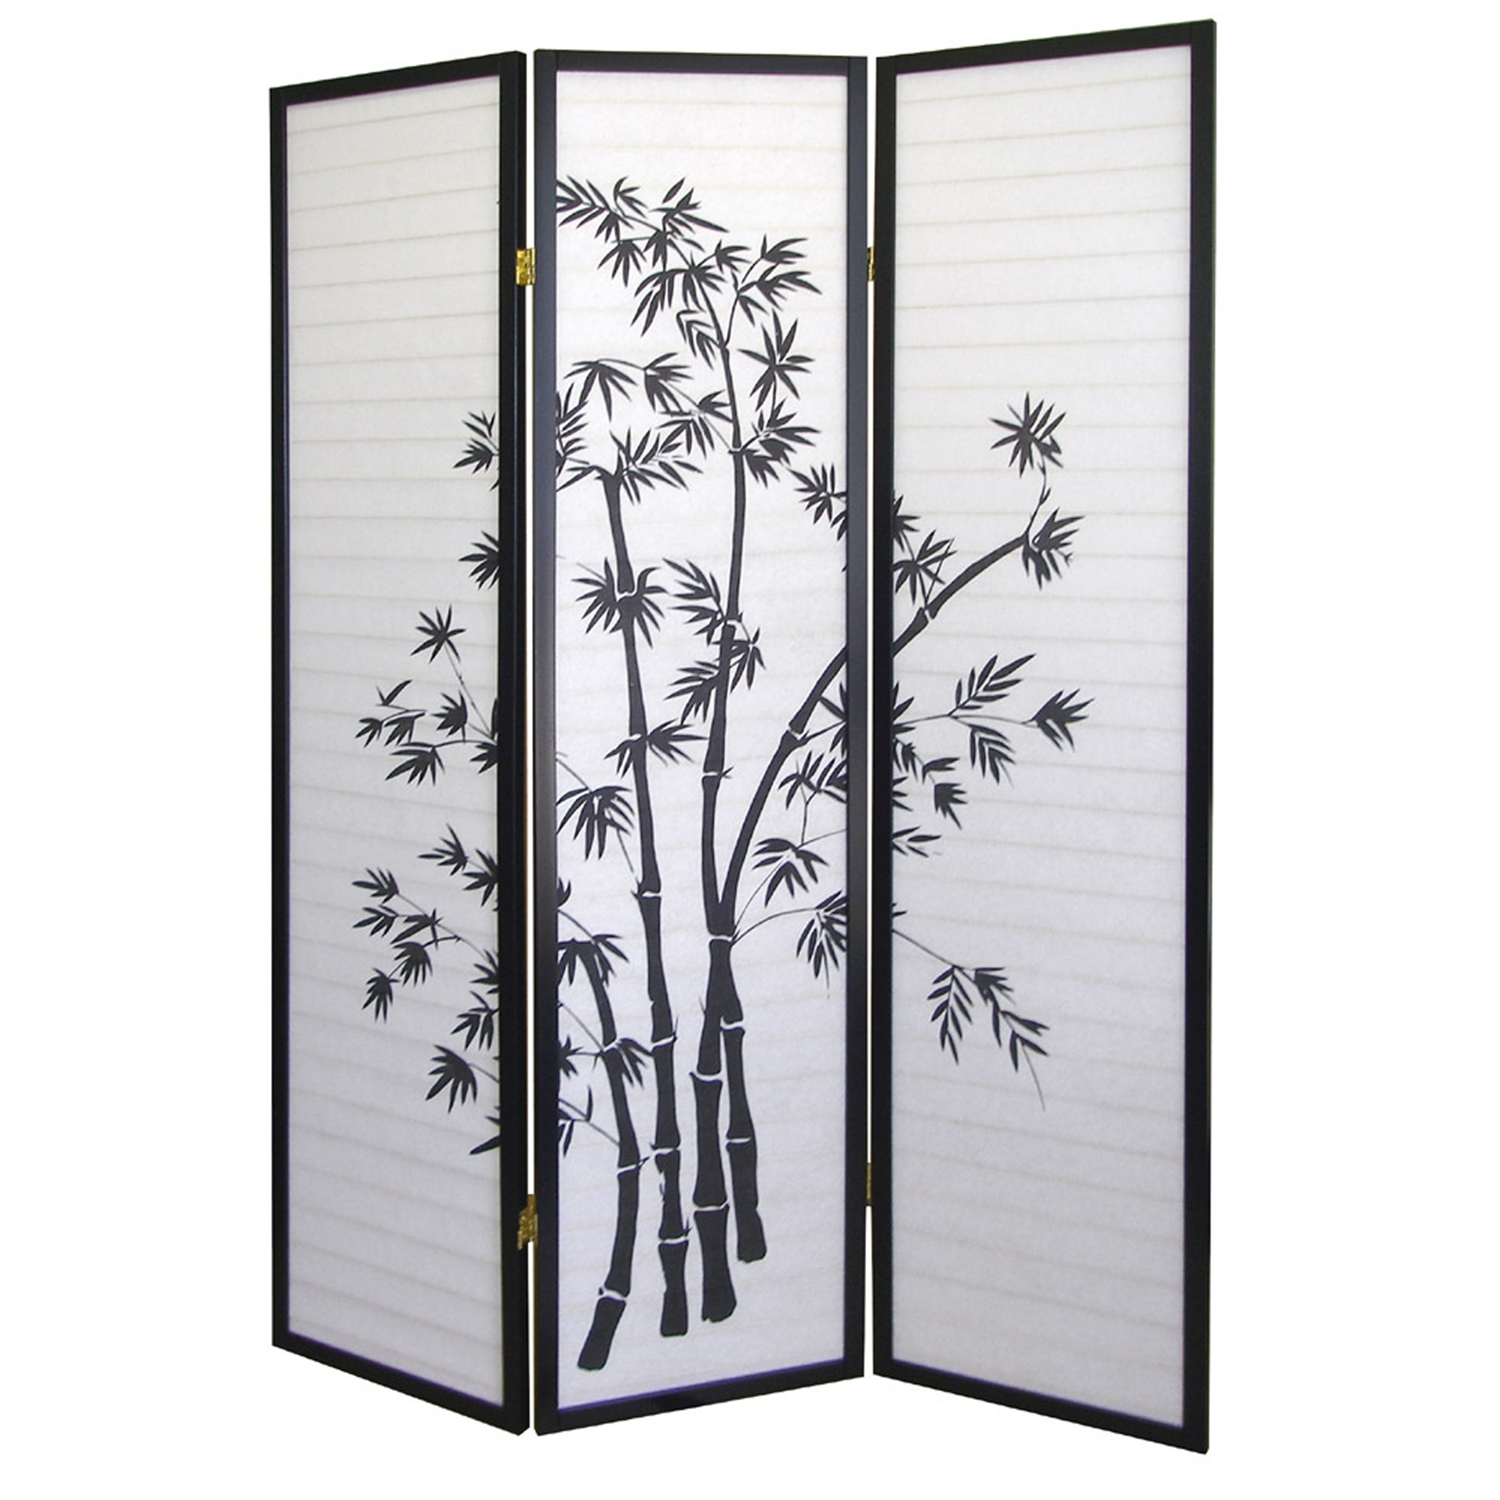 3 Panel Room Divider Privacy Screen With Bamboo Design Black White